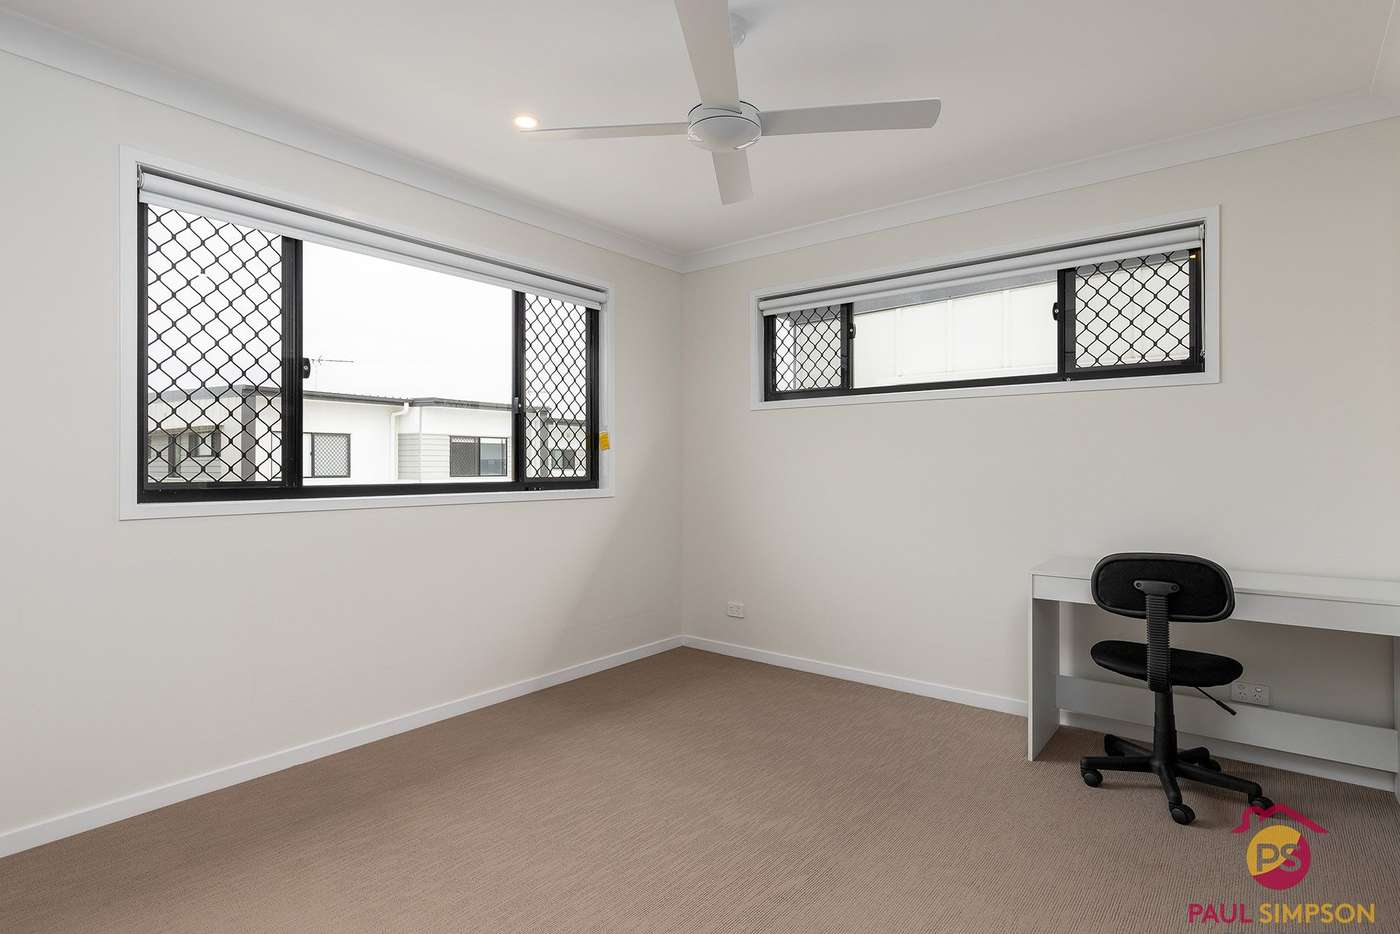 Seventh view of Homely apartment listing, 12/18 Comer Street, Coopers Plains QLD 4108